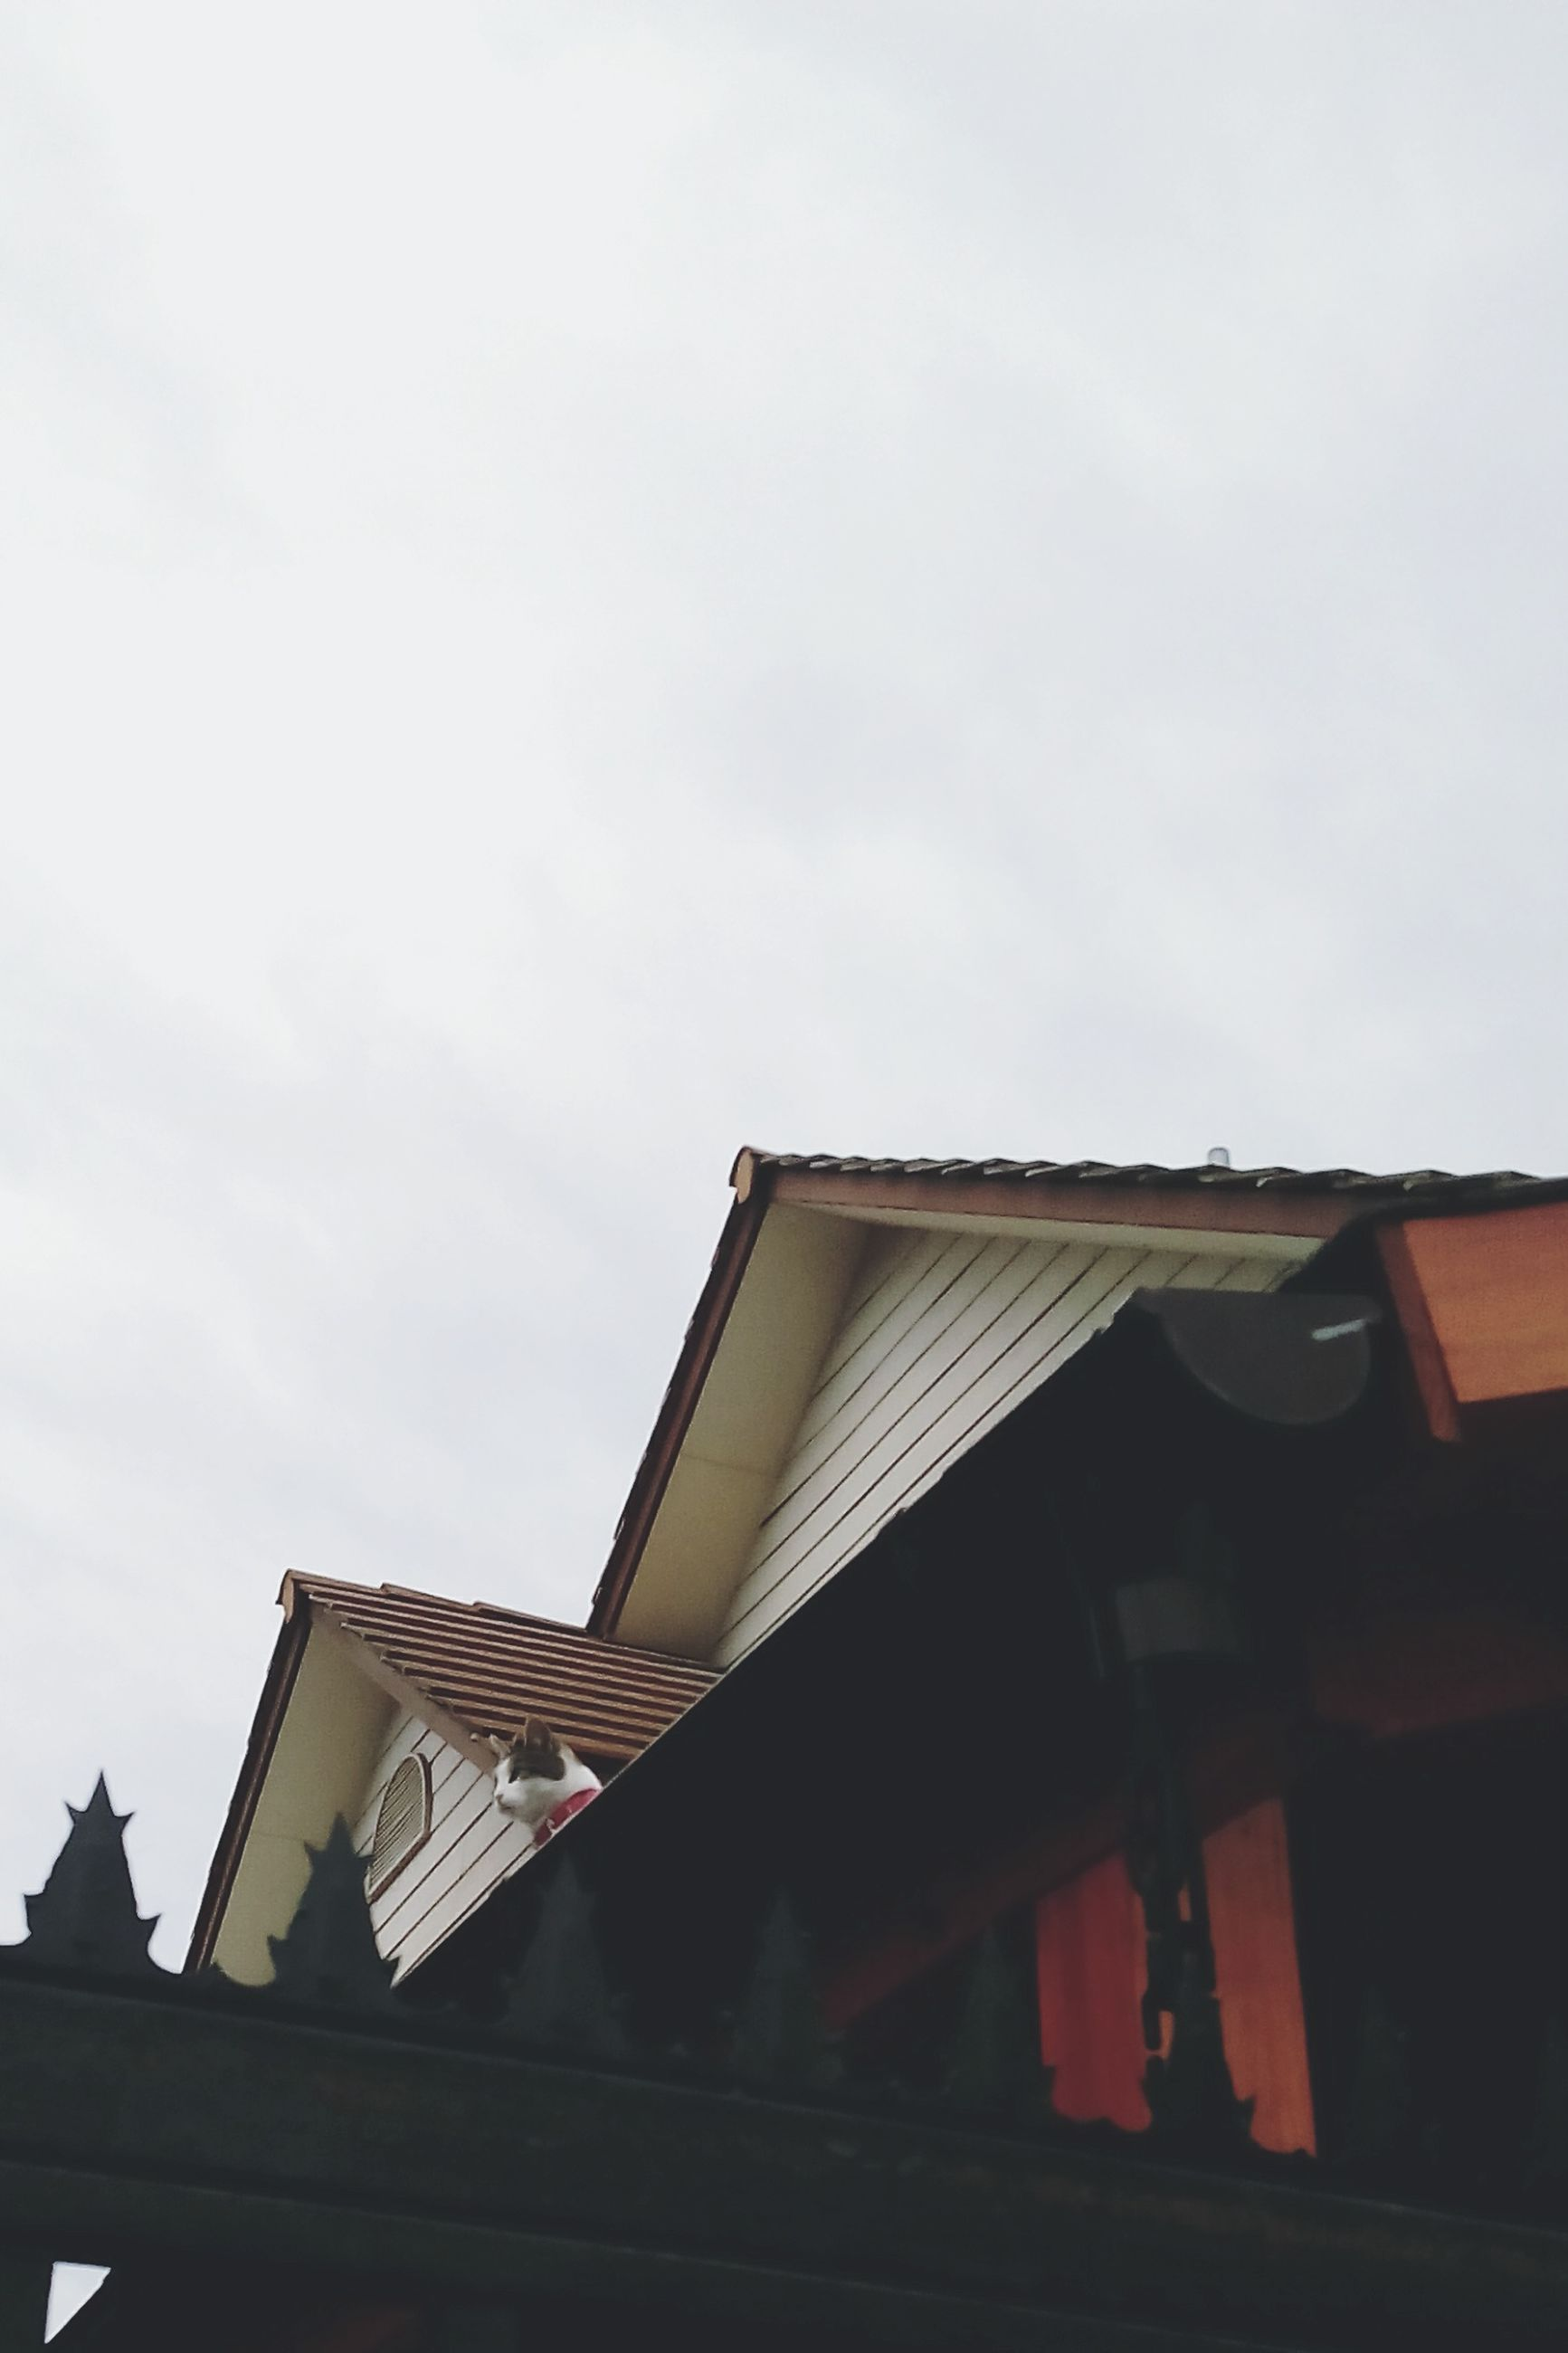 architecture, building exterior, built structure, low angle view, roof, house, sky, residential building, residential structure, high section, building, day, city, outdoors, no people, clear sky, copy space, window, roof tile, cloud - sky